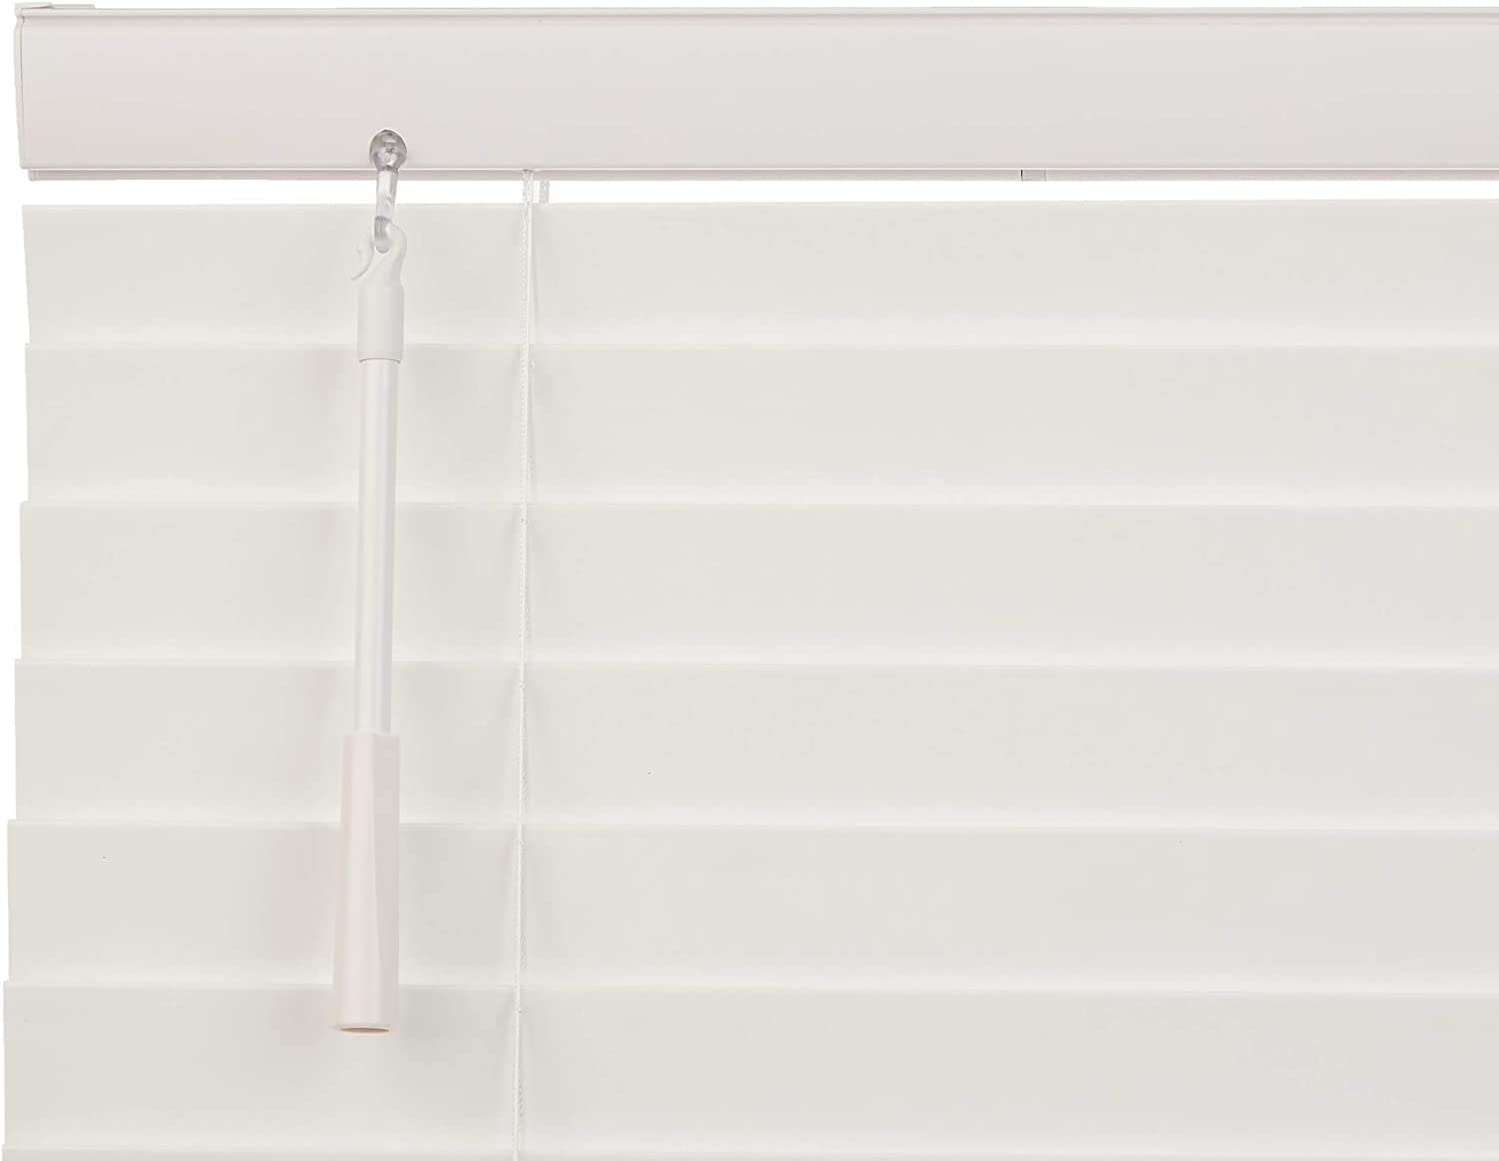 Amazon Com West Coast Blinds Premium Blackout Venetian Blind 60 X 96 Pure White Home Improvement